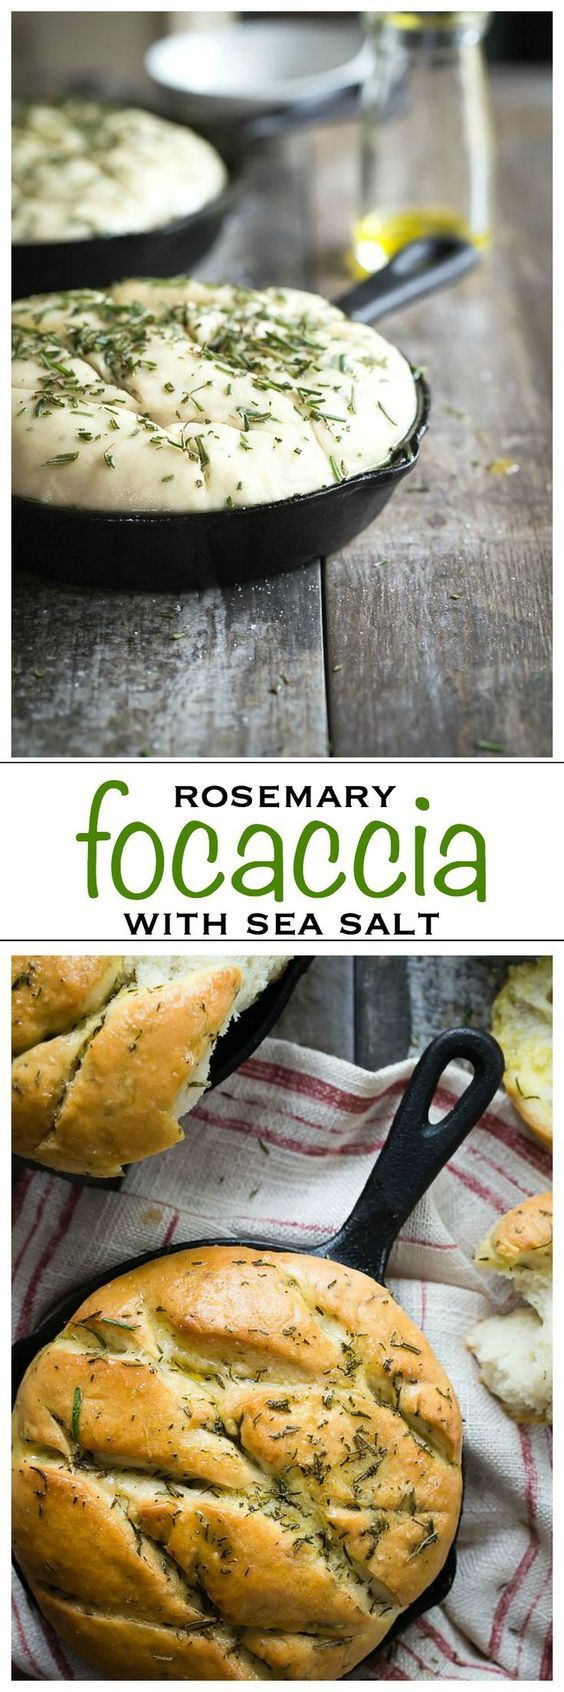 Soft and chewy focaccia bread with rosemary and sea salt - Foodness Gracious https://aletalove.wordpress.com/